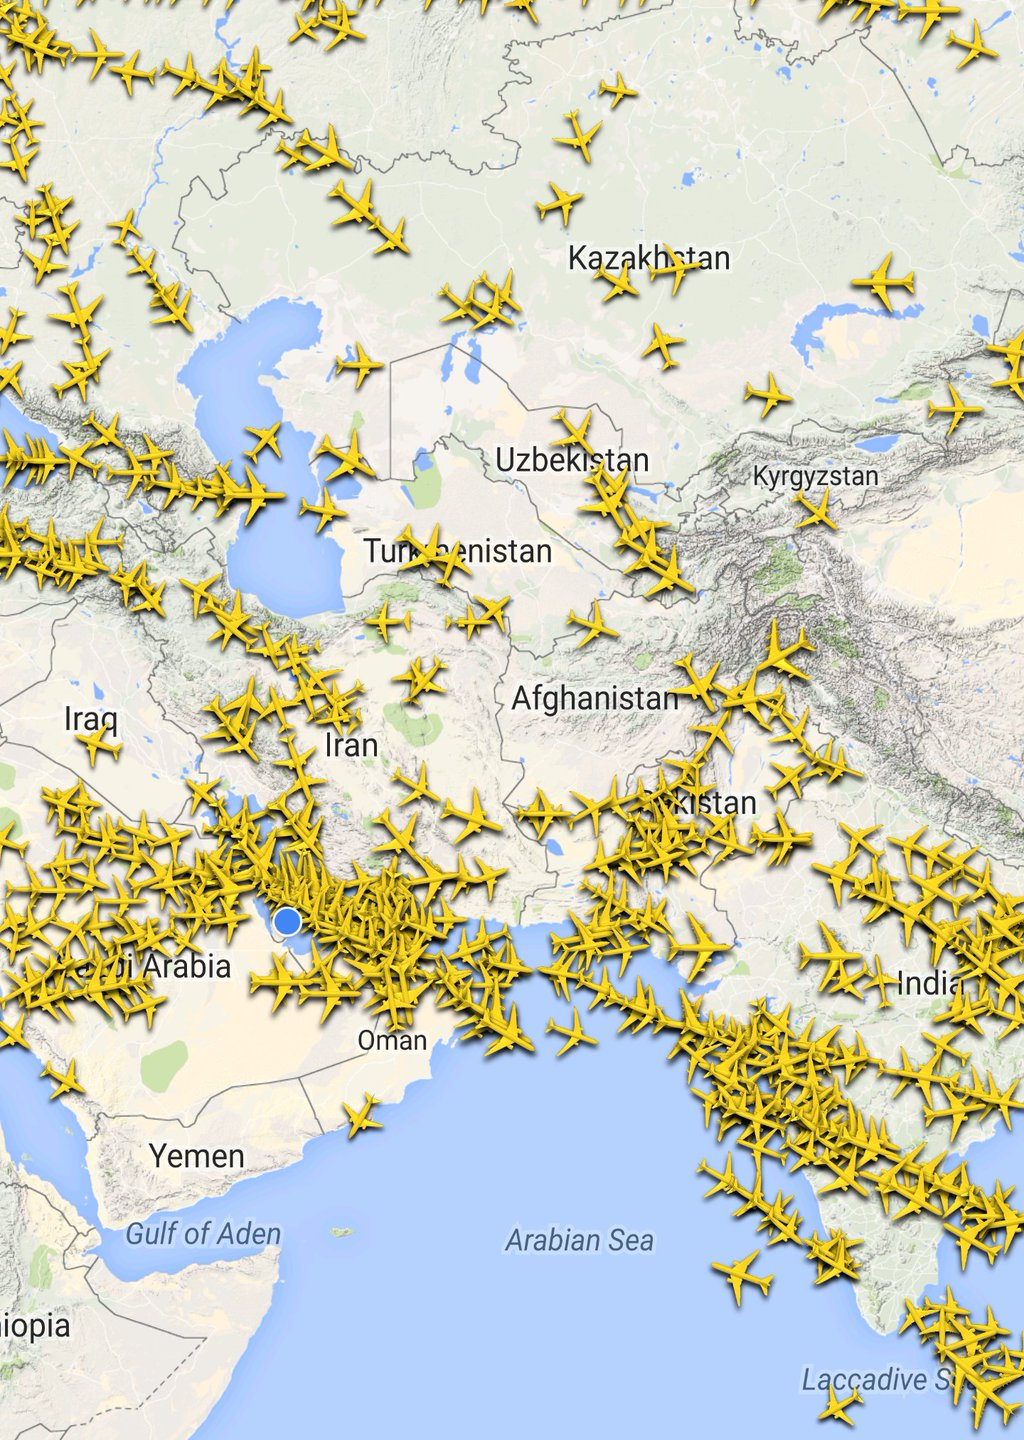 The Sky is Full of Planes ✈ Right Now plane,traffic,tracking,aviation,sky,air traffic control,satellite,map